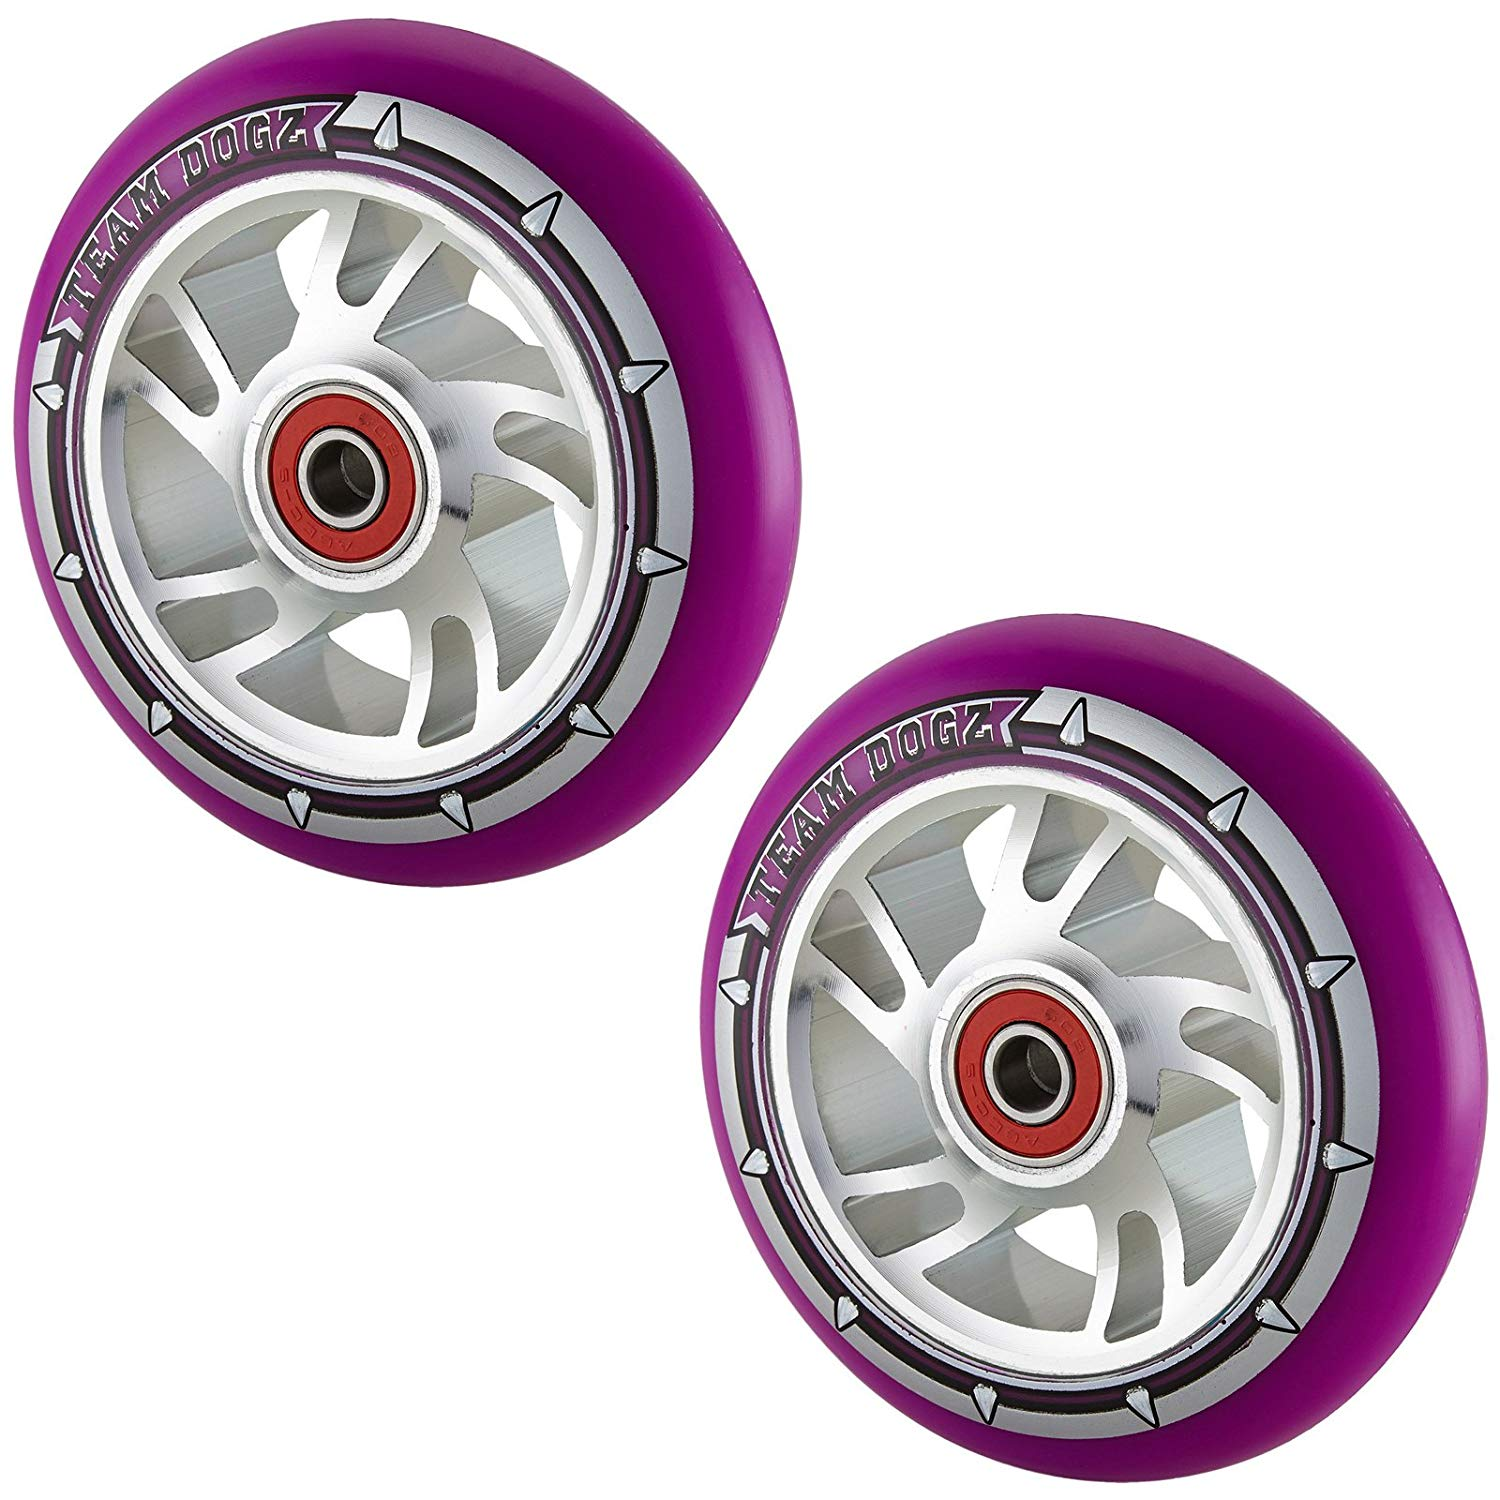 Team Dogz 100mm Swirl Scooter Wheels - Silver Cores Purple Tyres (Pair)